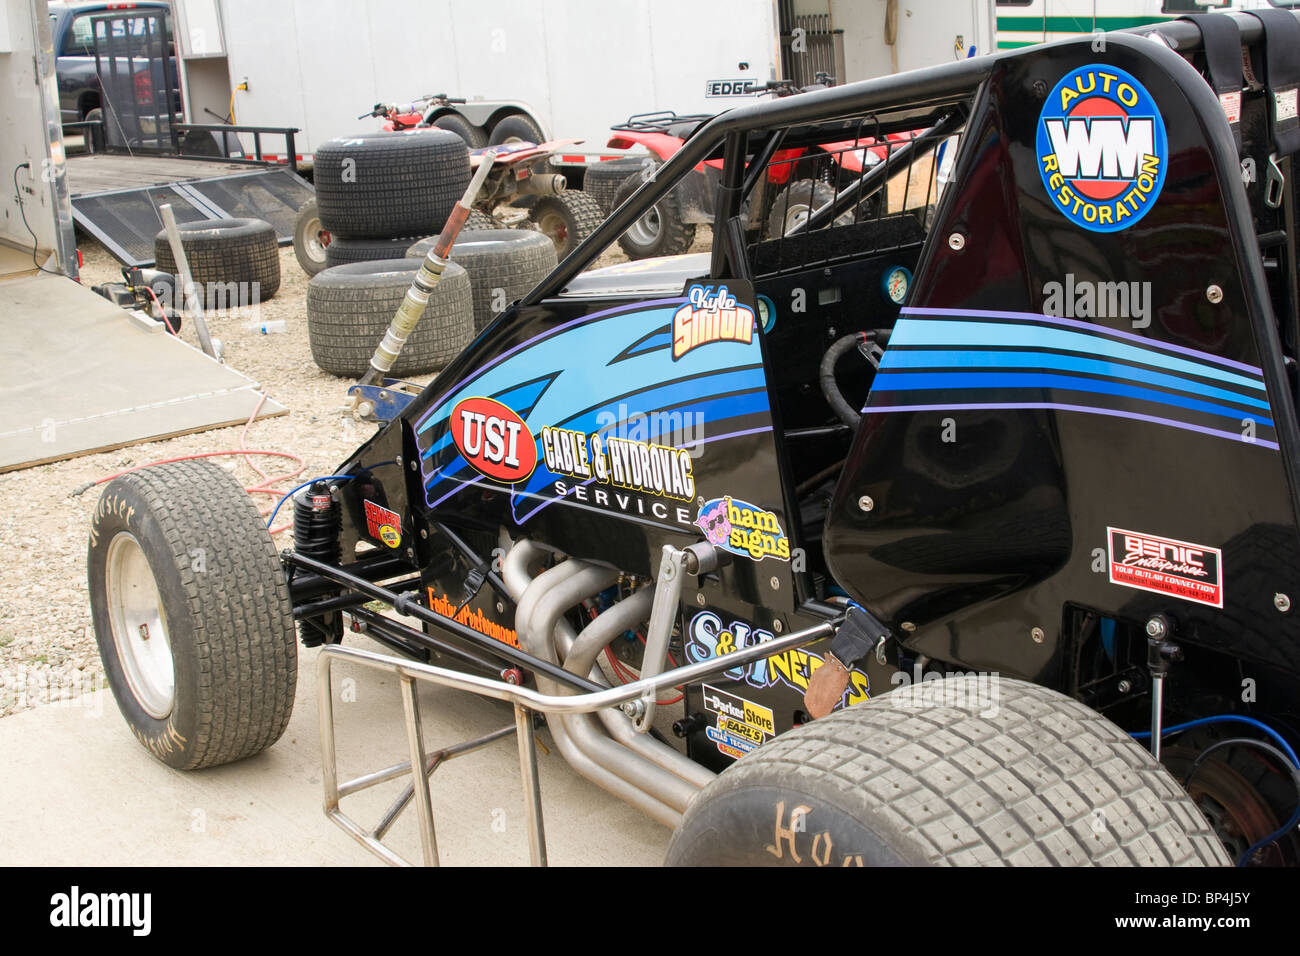 dirt track car race stock photos dirt track car race stock images alamy. Black Bedroom Furniture Sets. Home Design Ideas